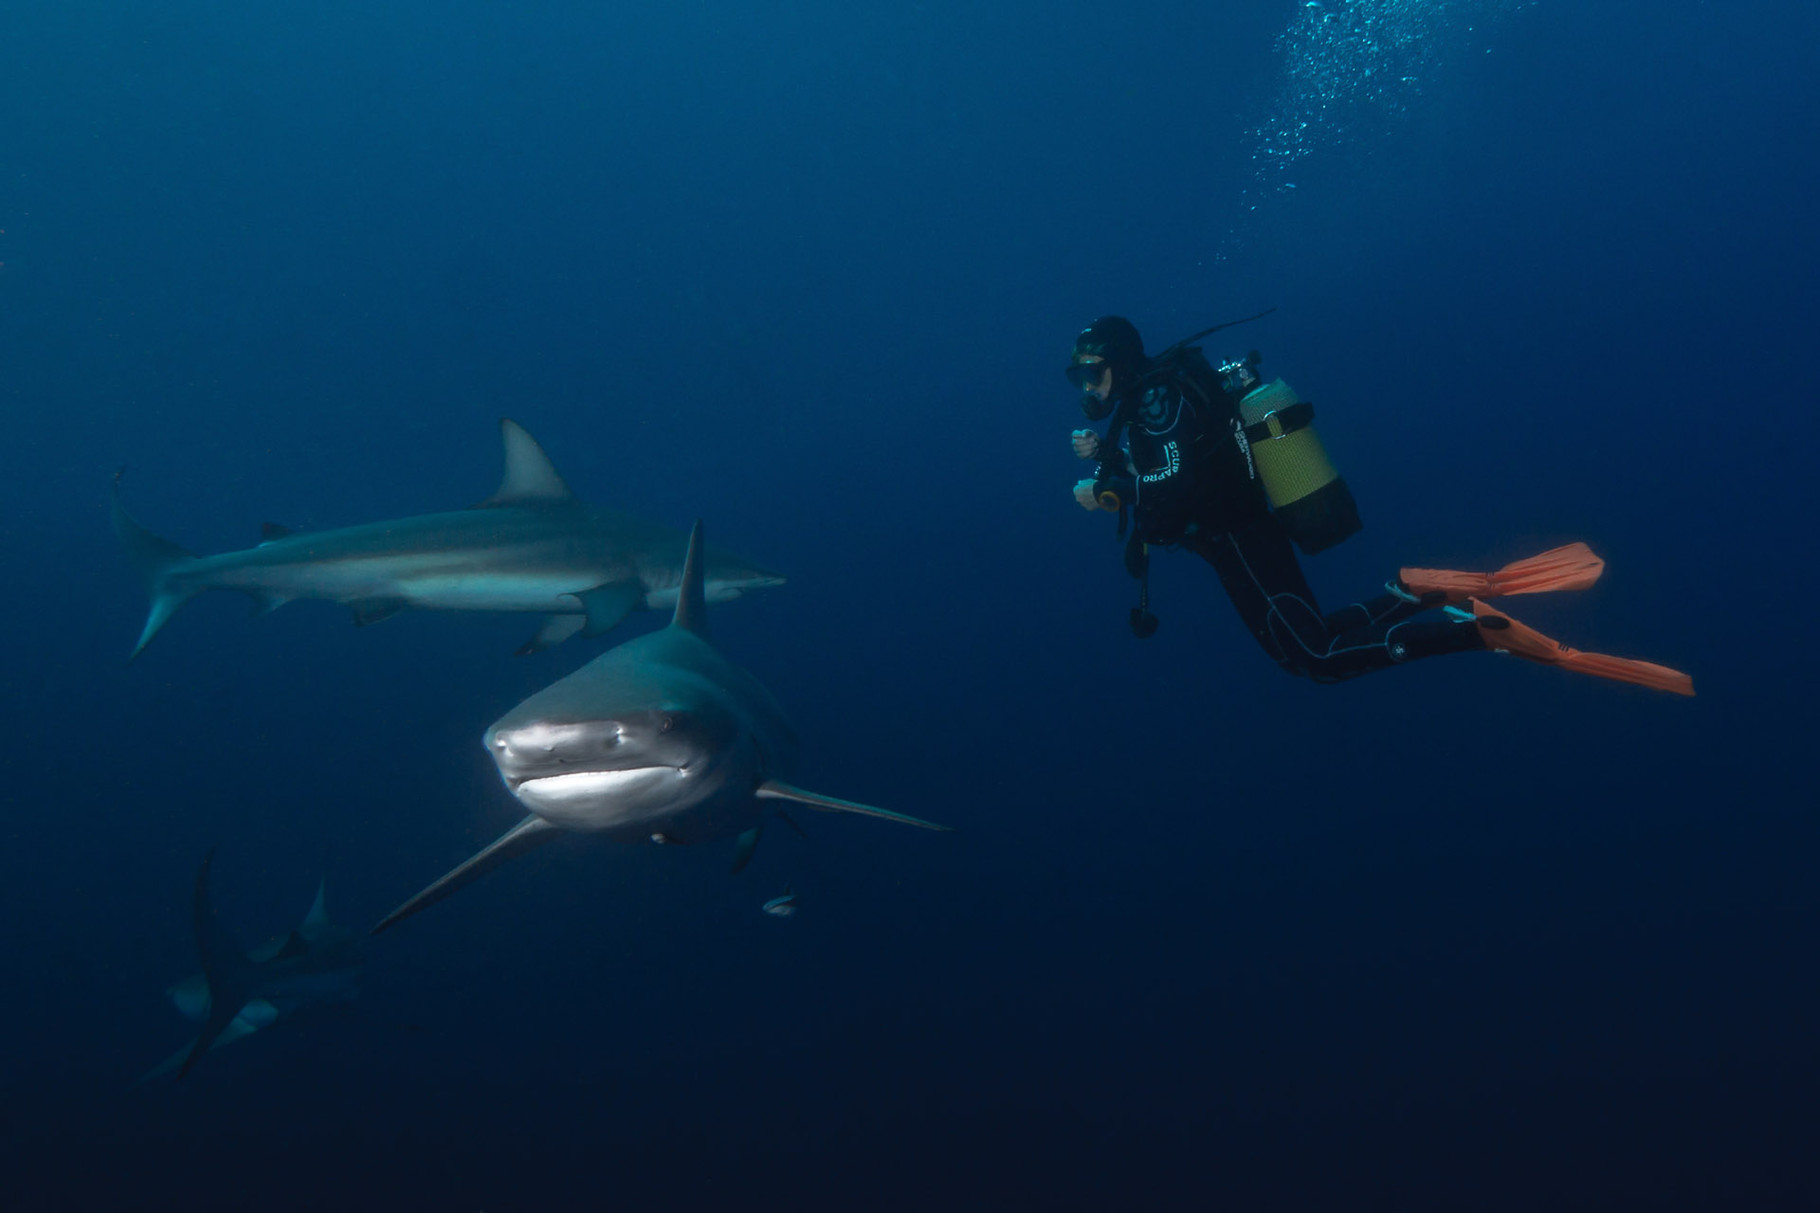 Oceanic blacktip sharks and diver